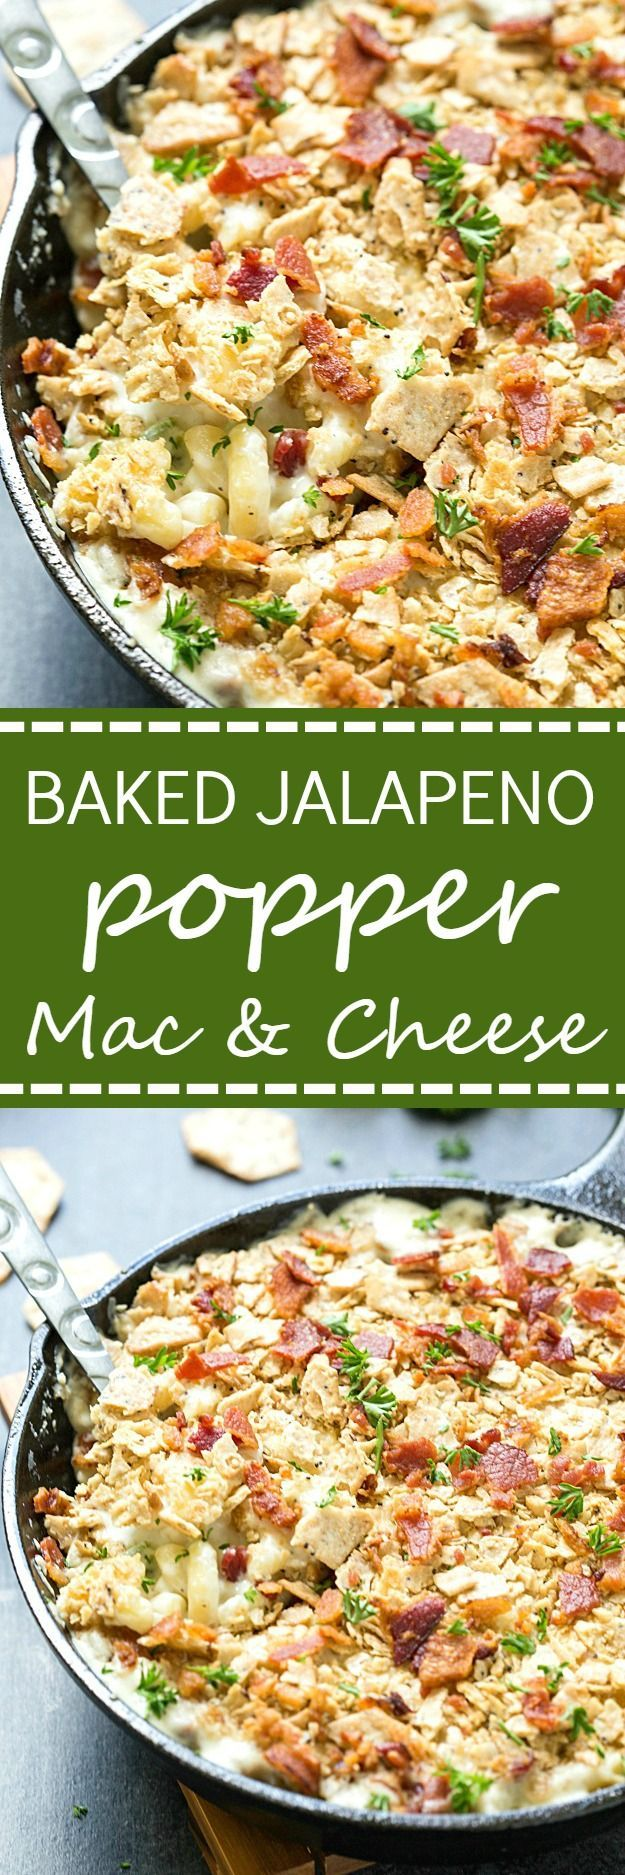 Baked Jalapeno Popper Mac And Cheese Recipe Food Recipes Food